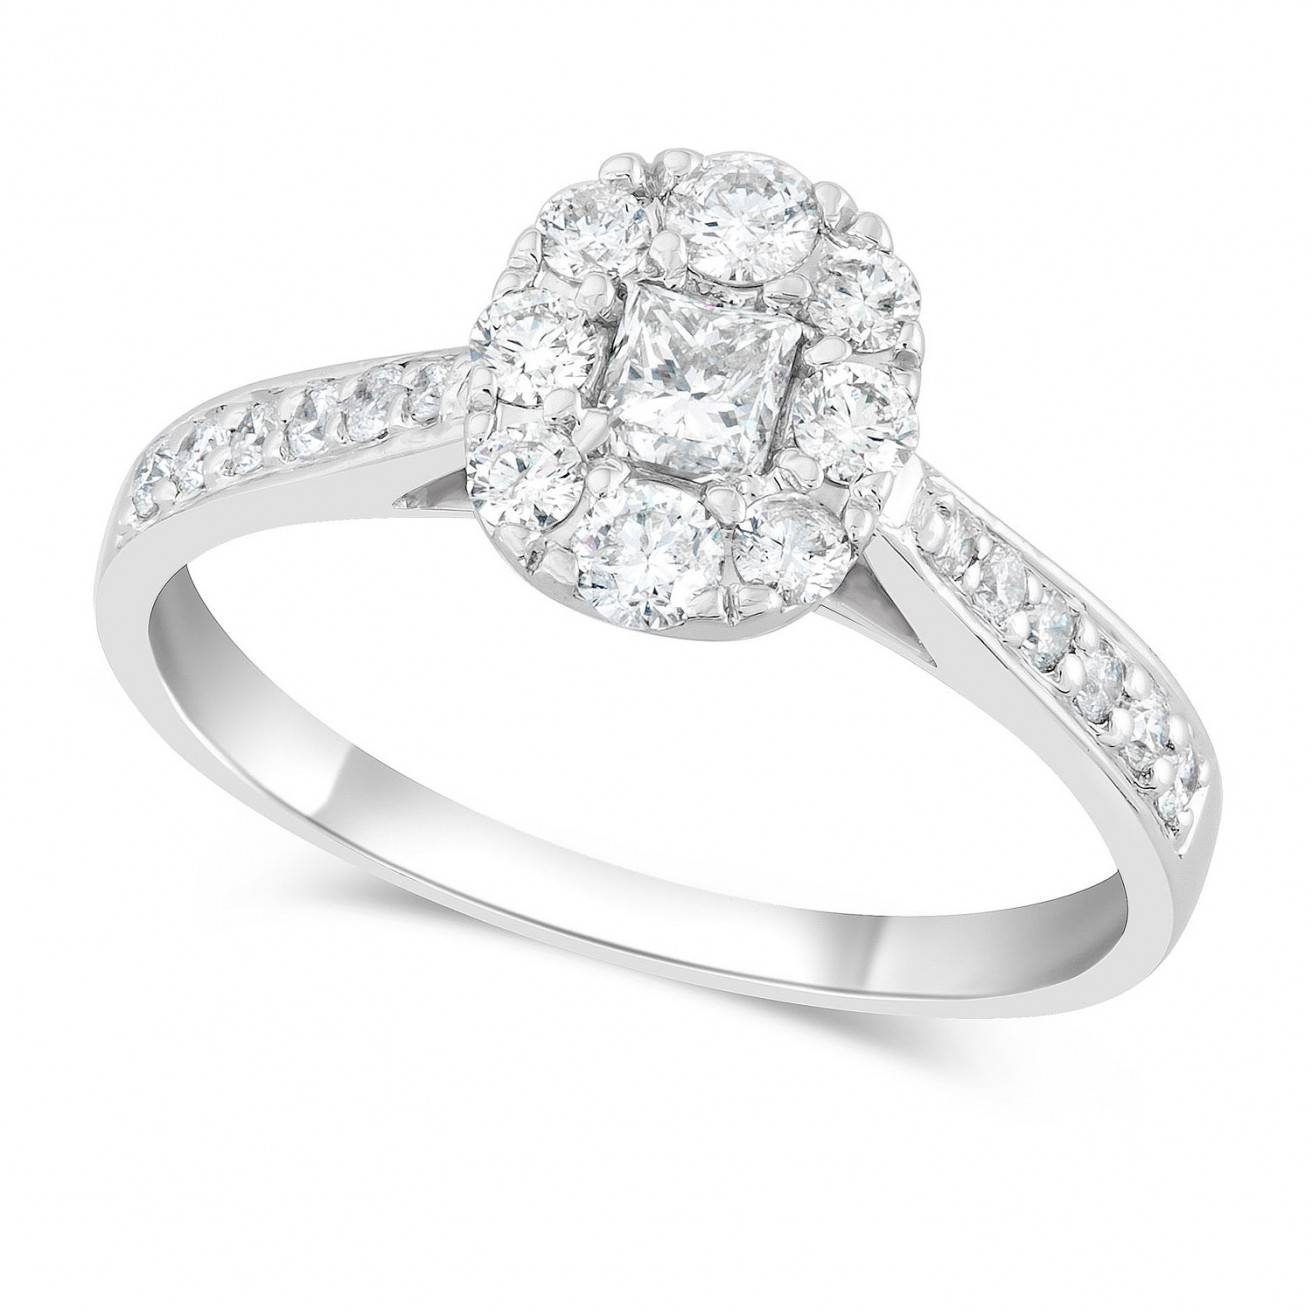 Ring Twisted Engagement Ring With Wedding Band Daniels Jewelry With Regard To Small Diamond Wedding Bands (View 10 of 15)